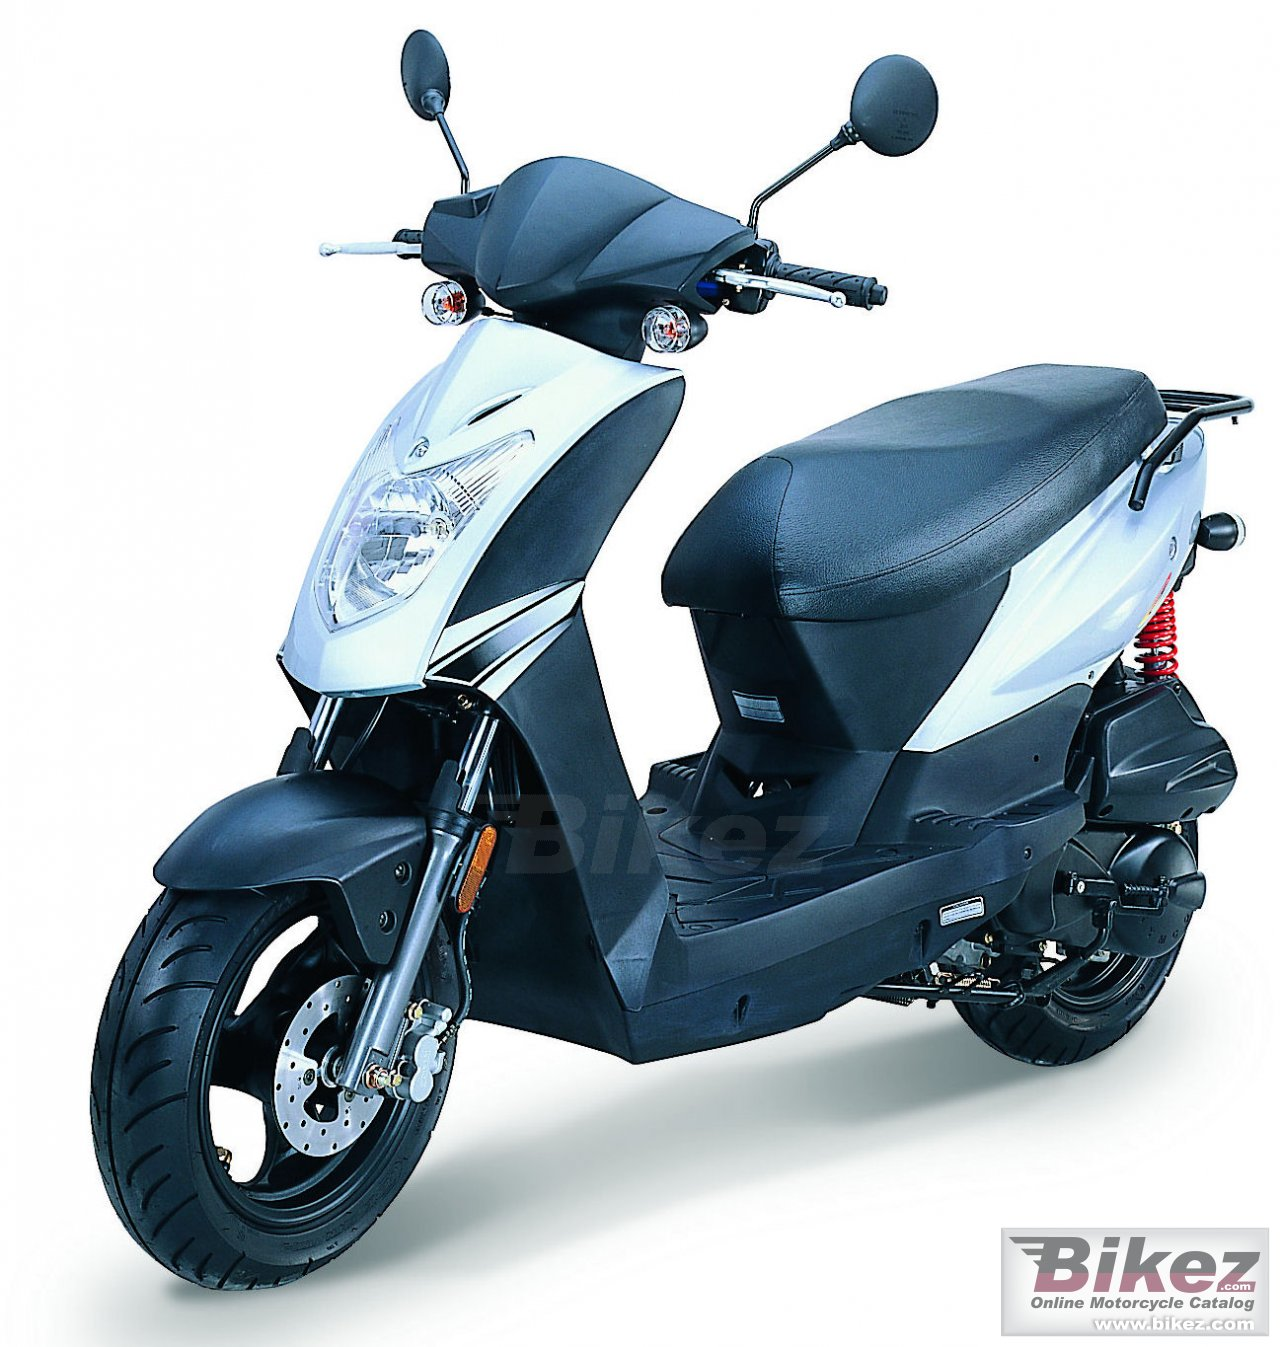 Kymco Agility 50 2006 images #101916